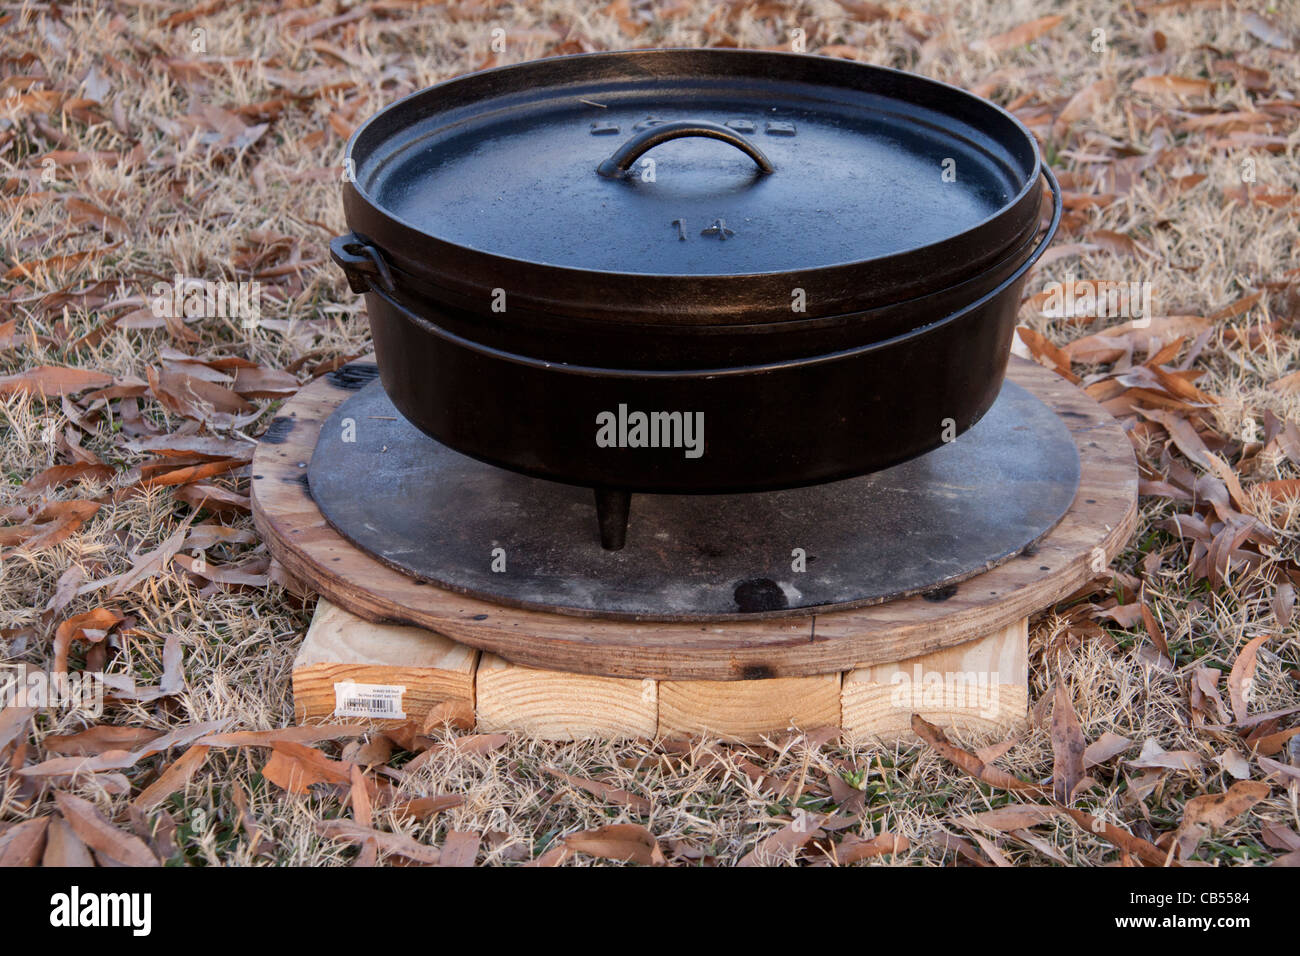 Dutch Oven Outdoor Cooking Cast Iron Or Black Iron Pot With Lid